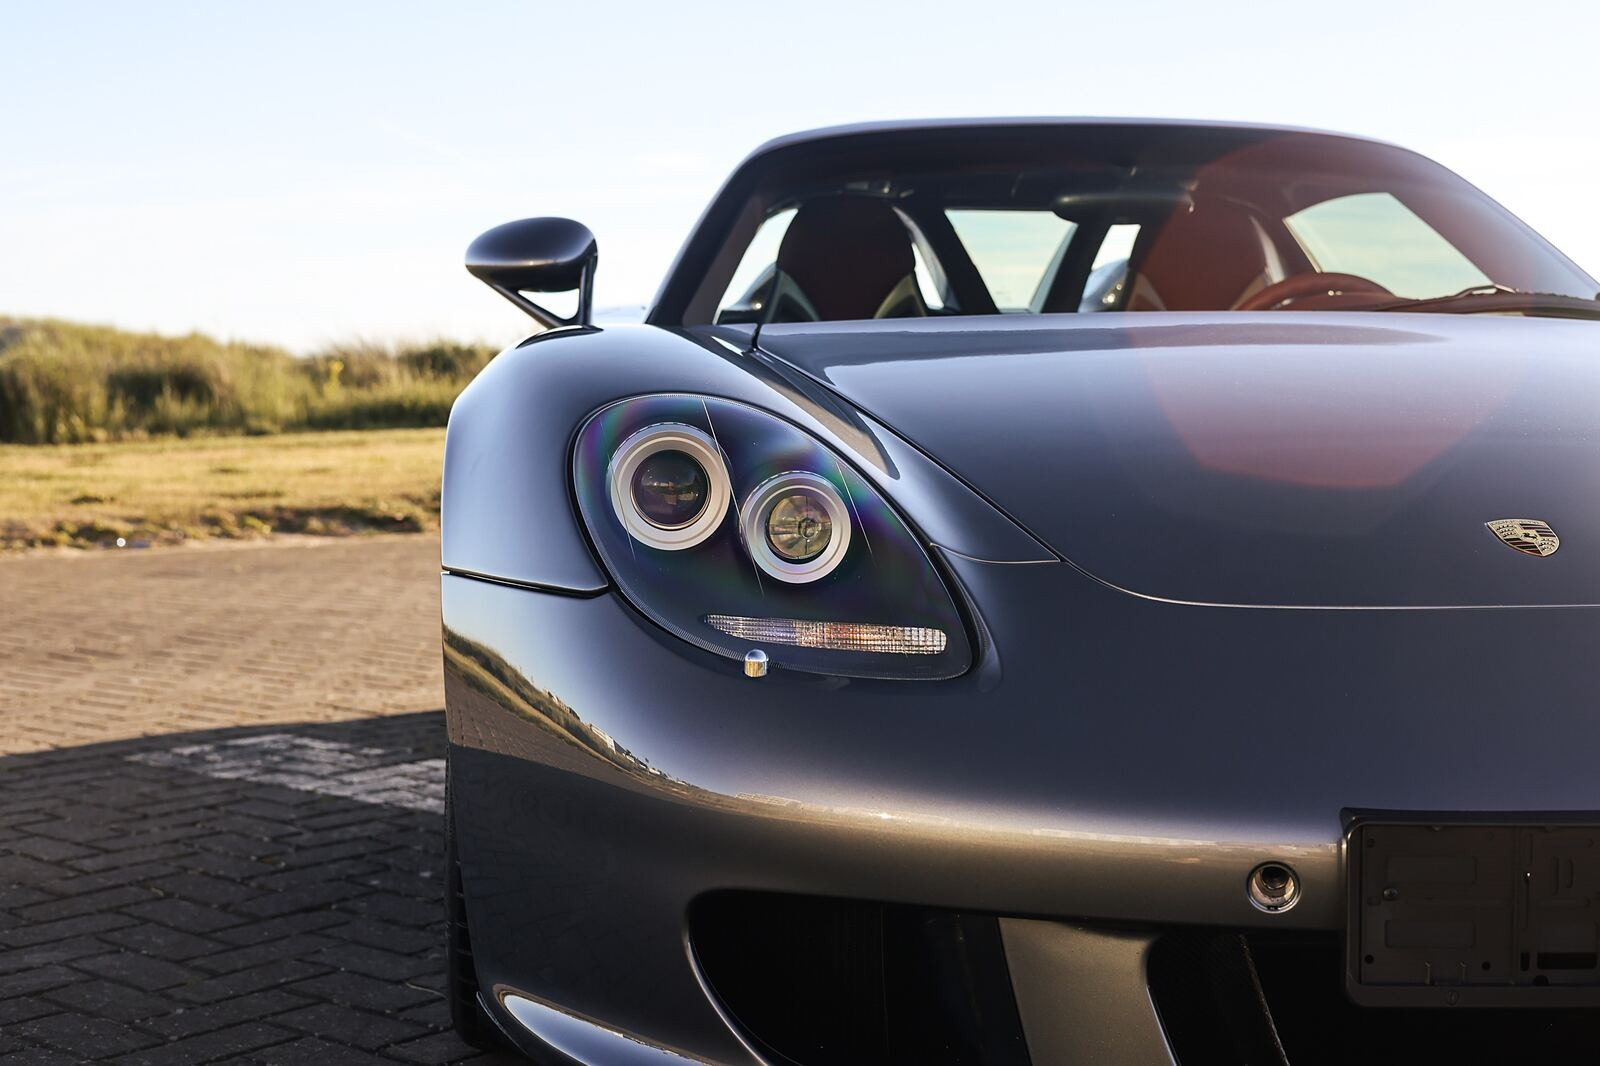 THE BEST PLACE TO SELL YOUR SUPERCAR